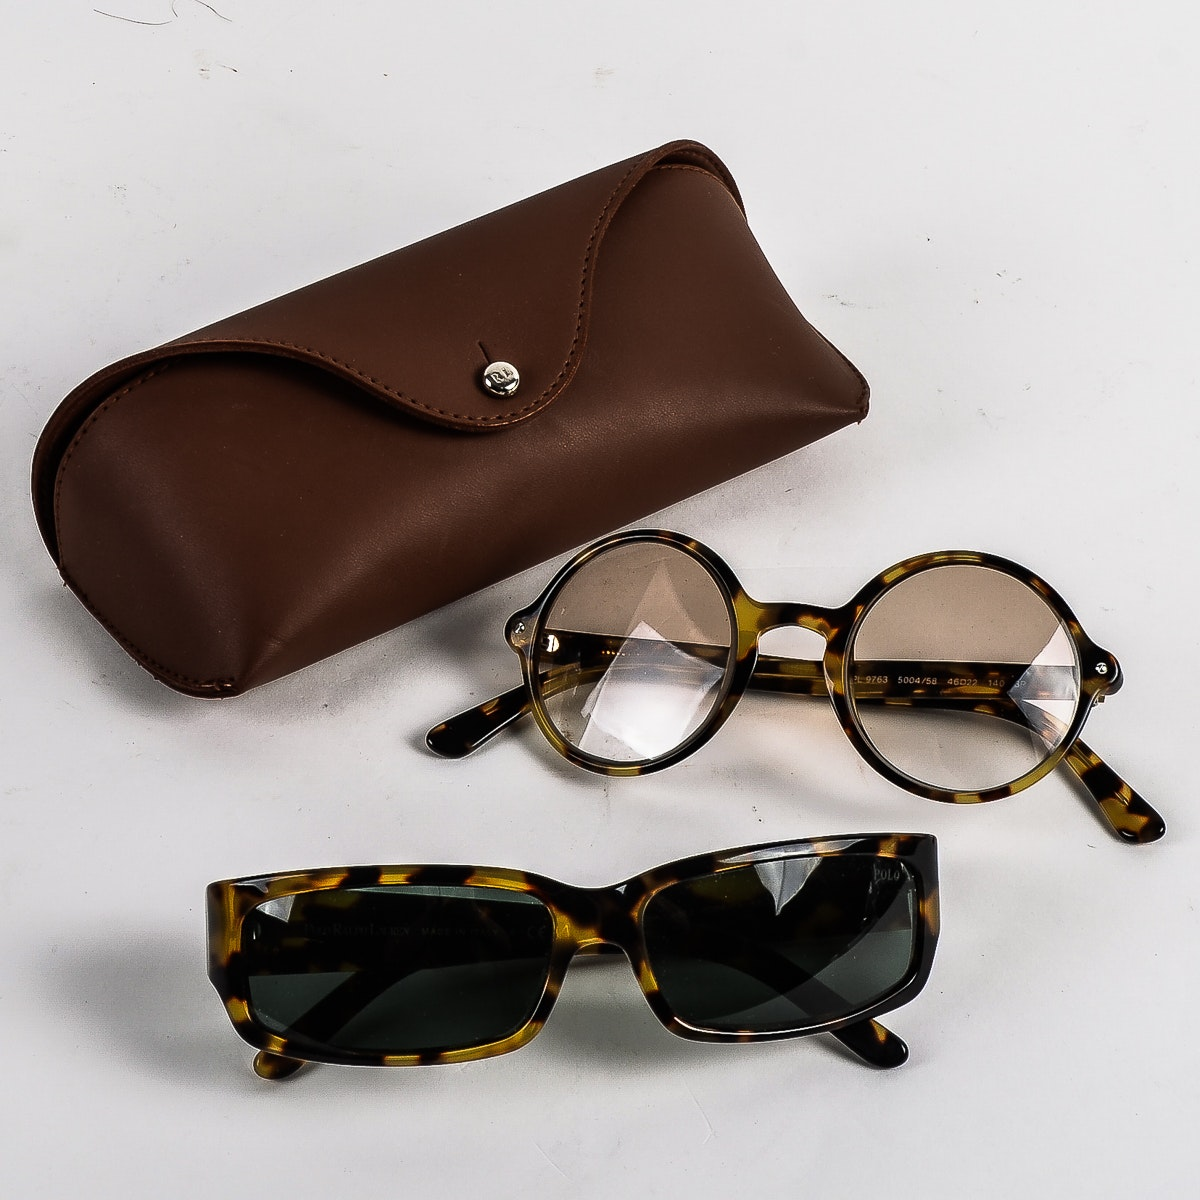 Ralph Lauren Sunglasses for Men